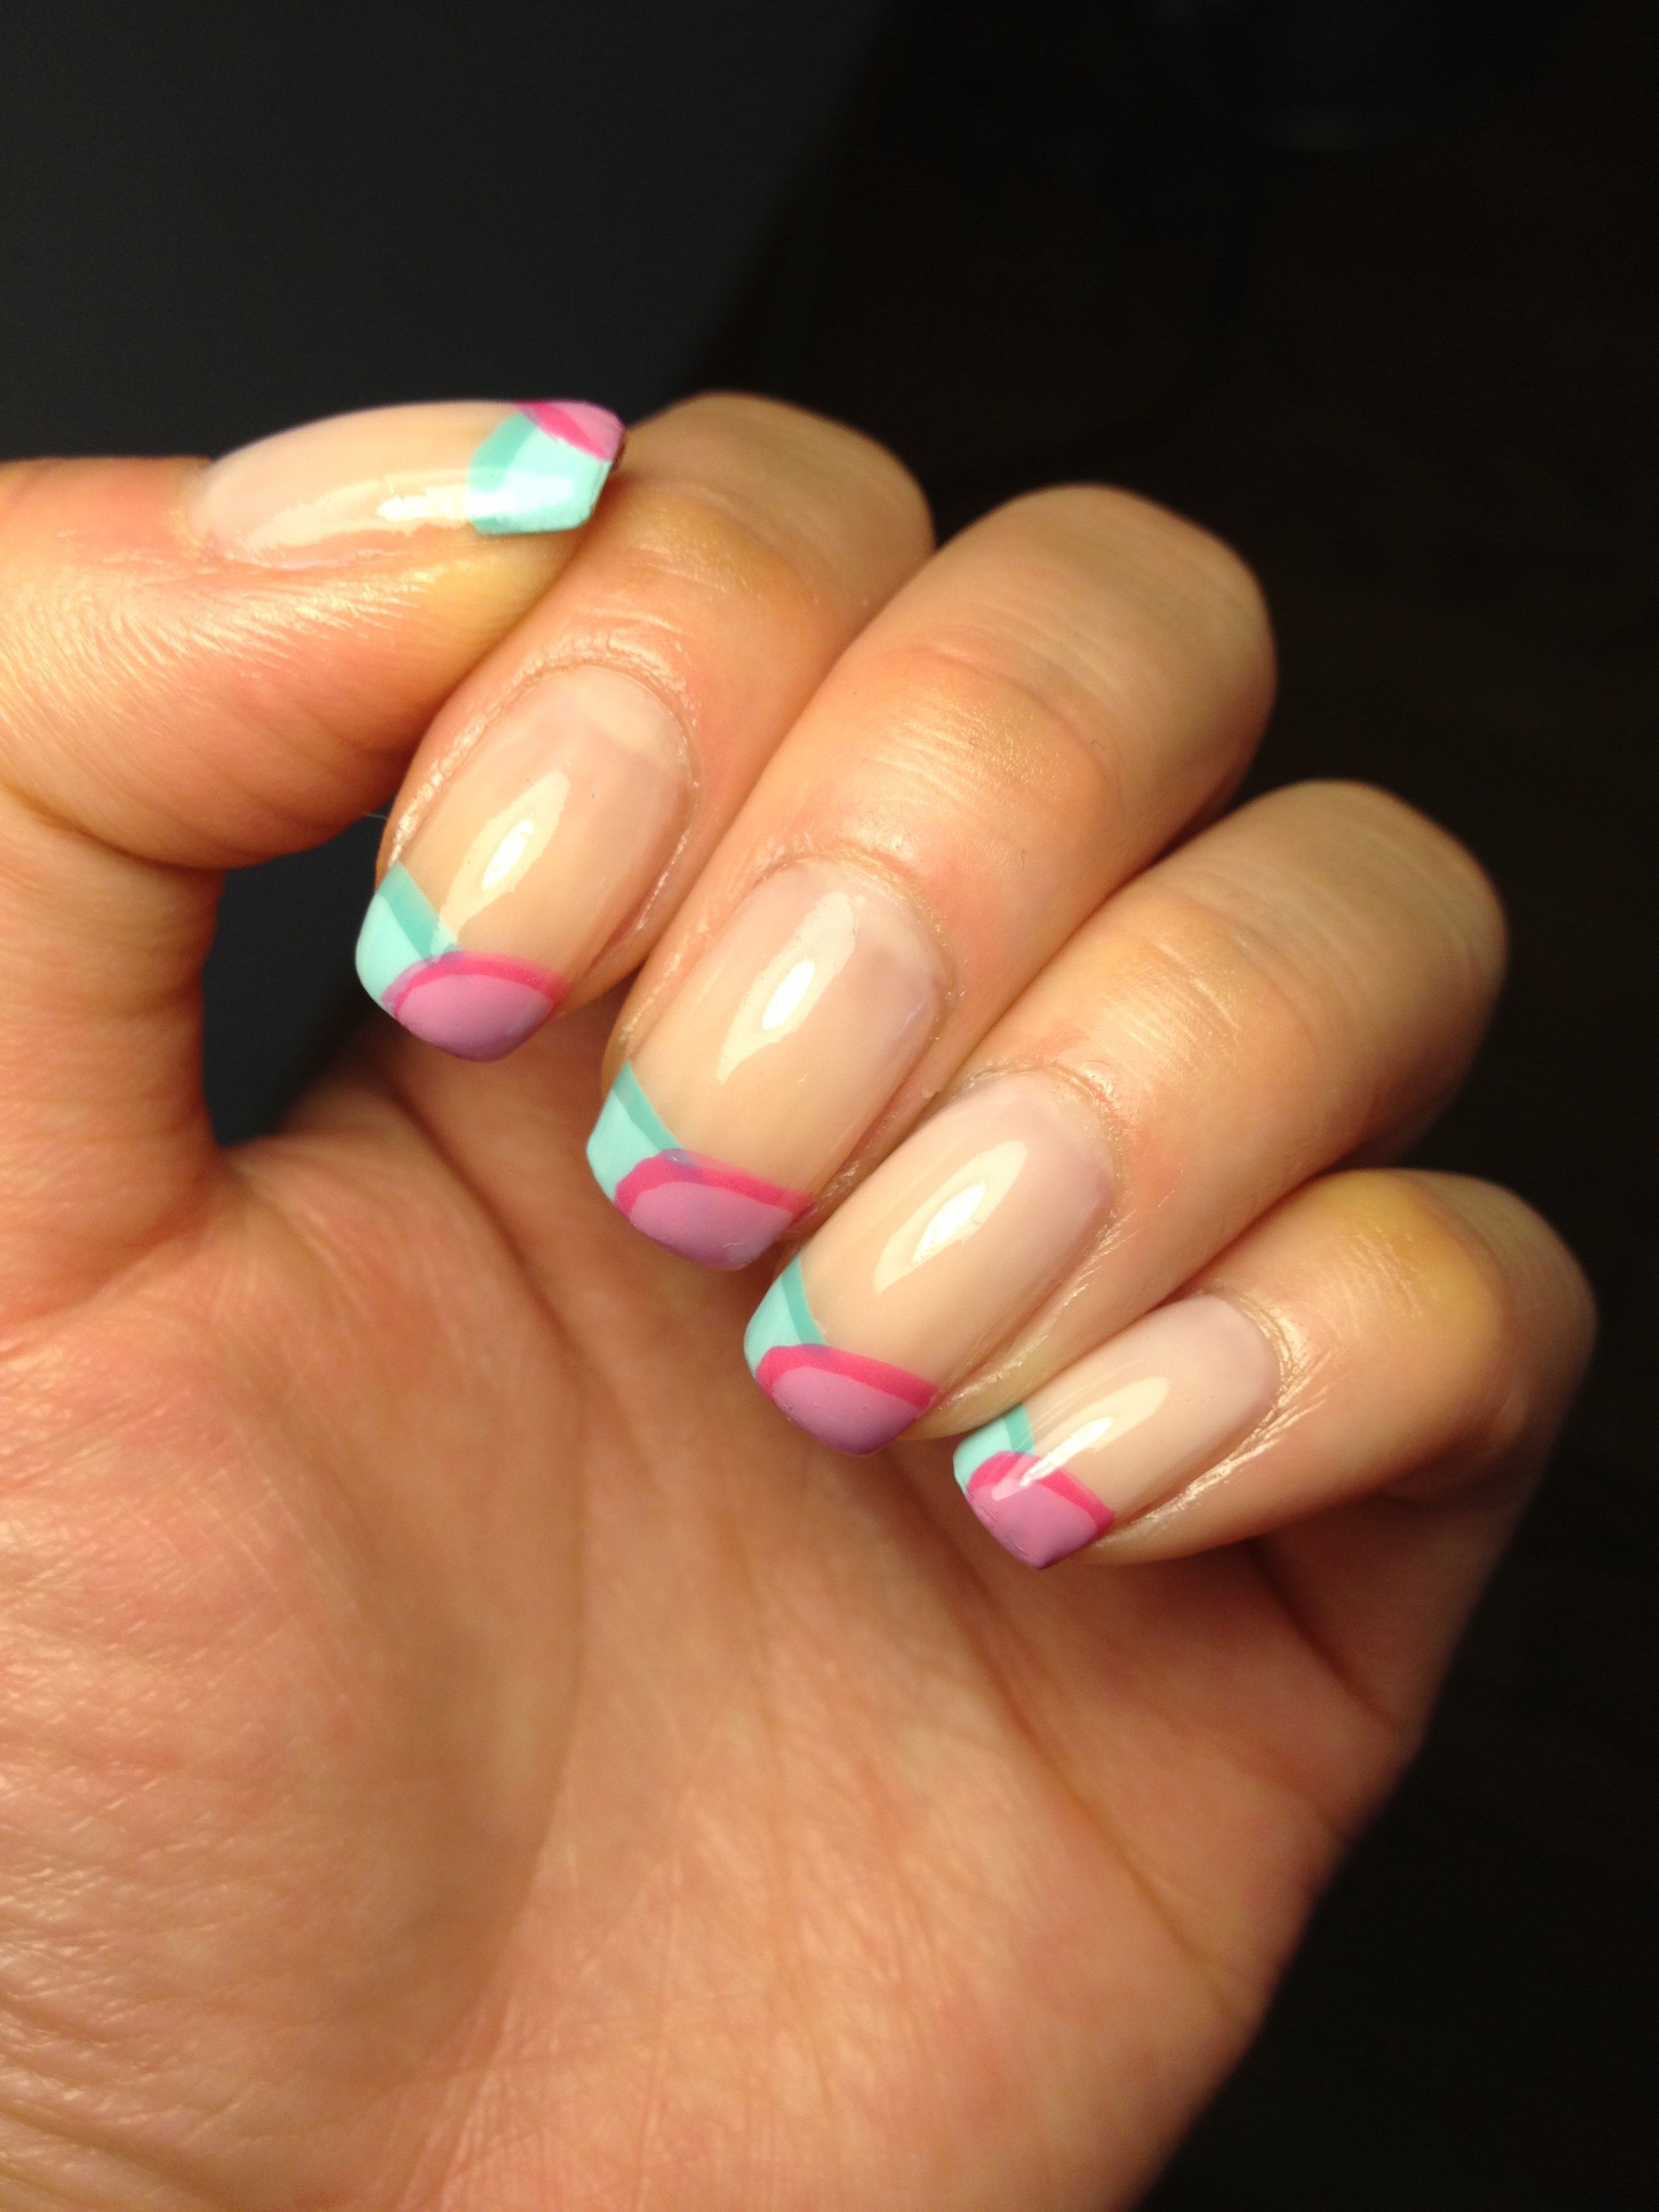 Colored french nail design - Two Color French Manicure Photo